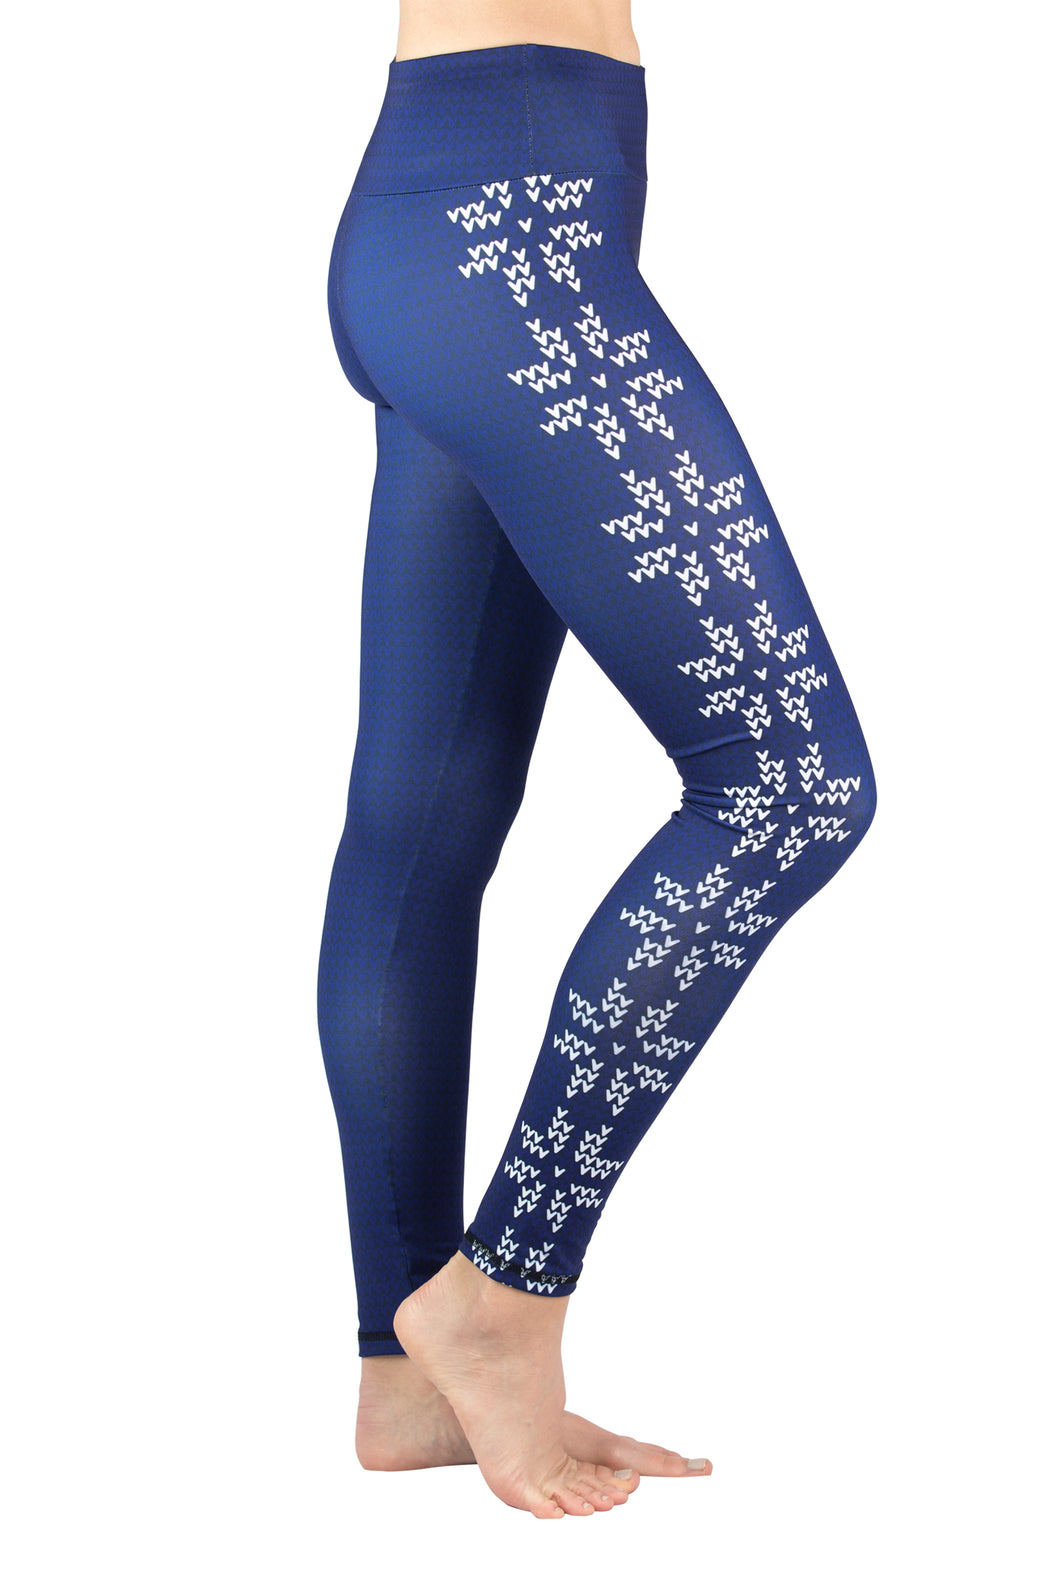 BASELAYER LEGGING - KNIT SNOWFLAKE